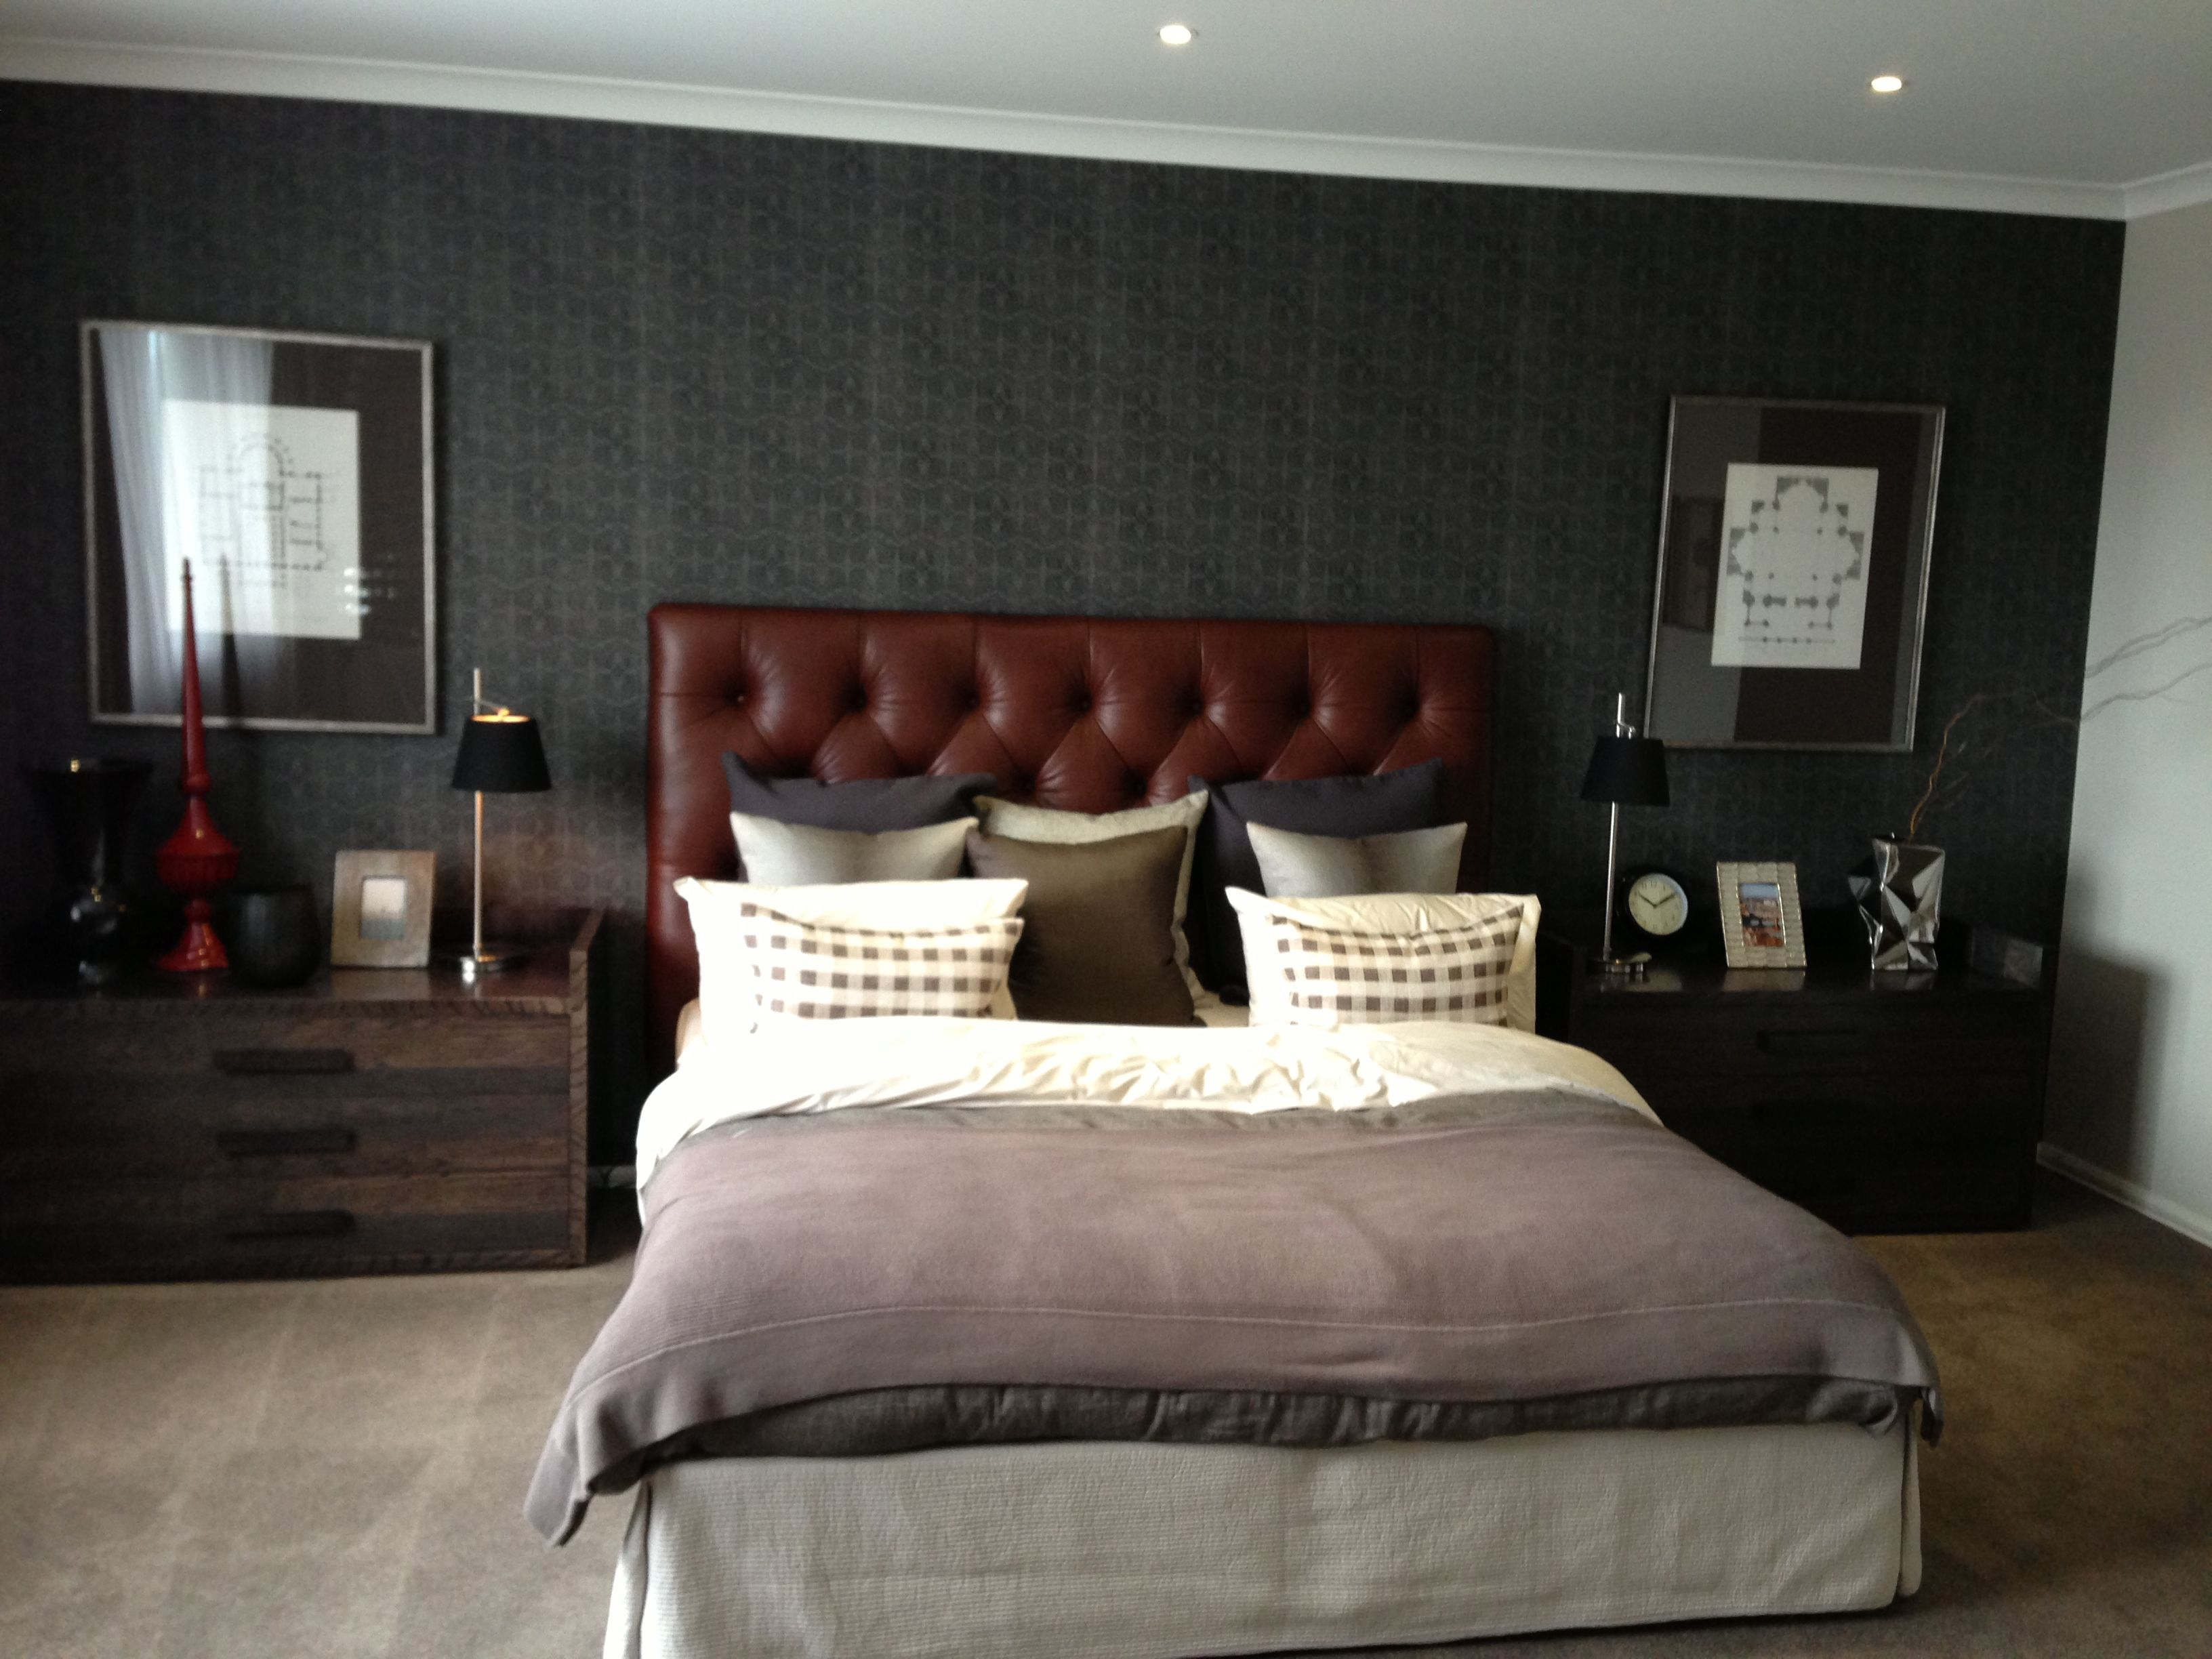 Masculine Bedroom Ideas masculine bedrooms interior decoration with brown leather tufted